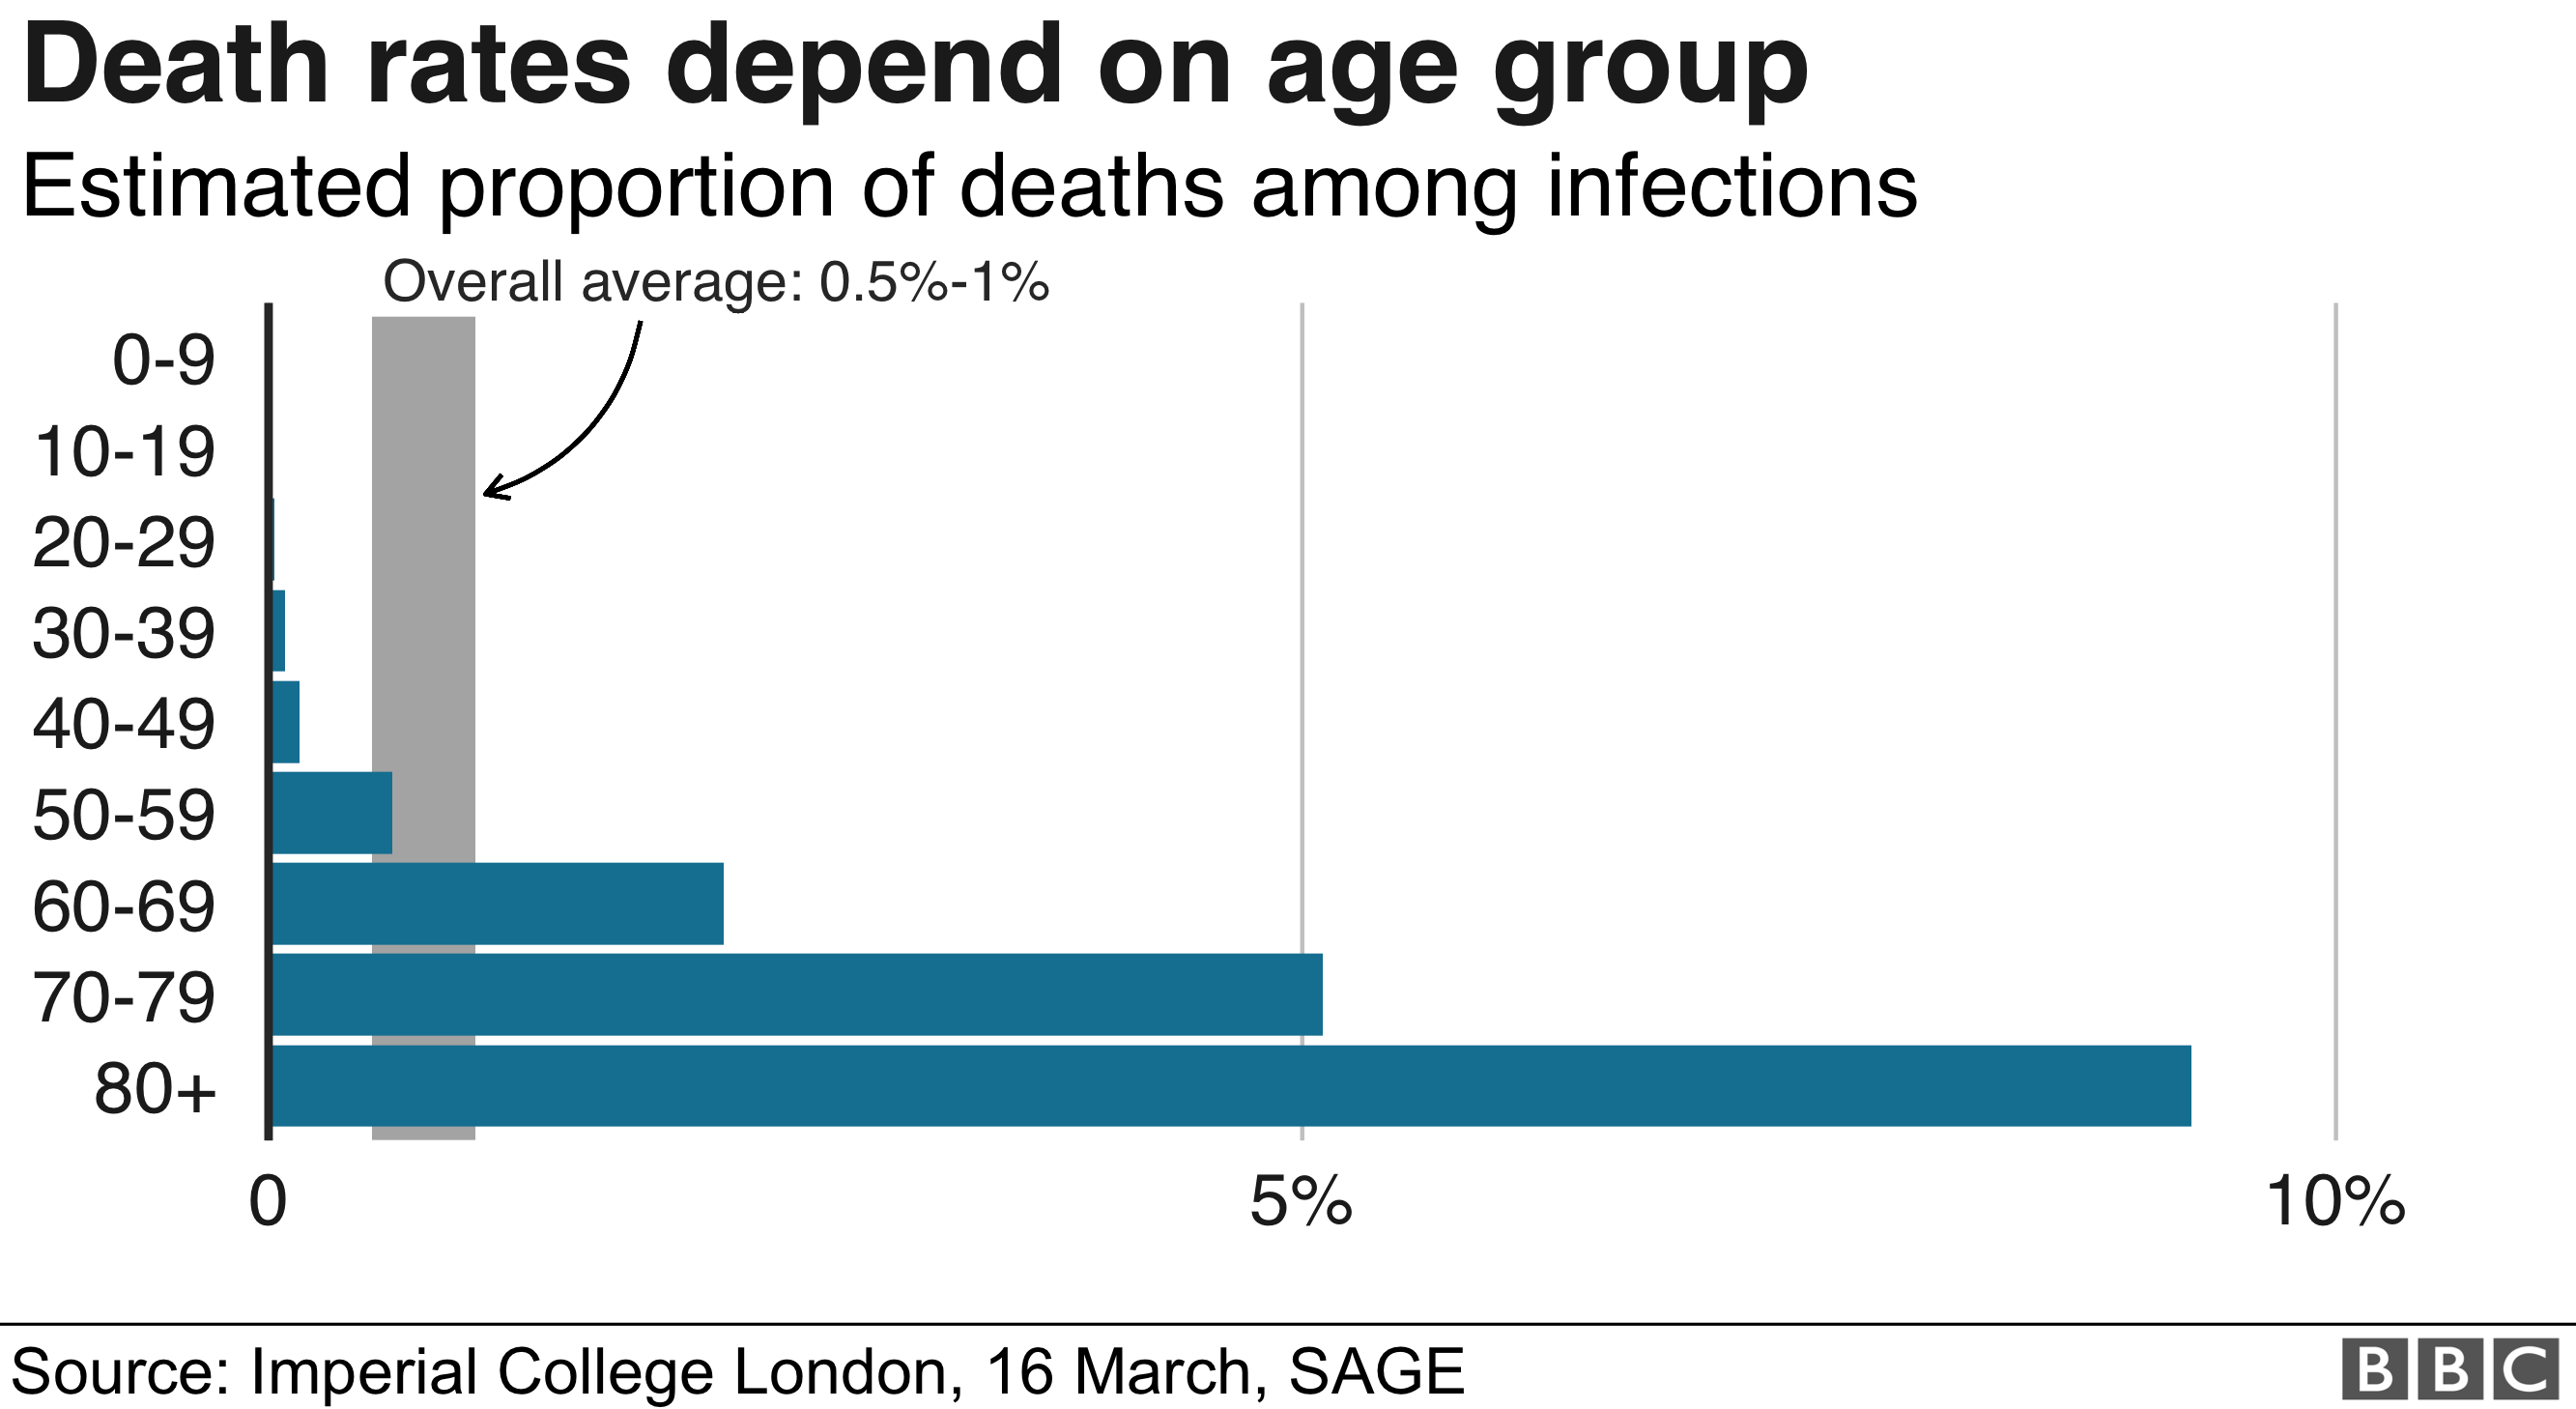 Chart showing death rates for different age group